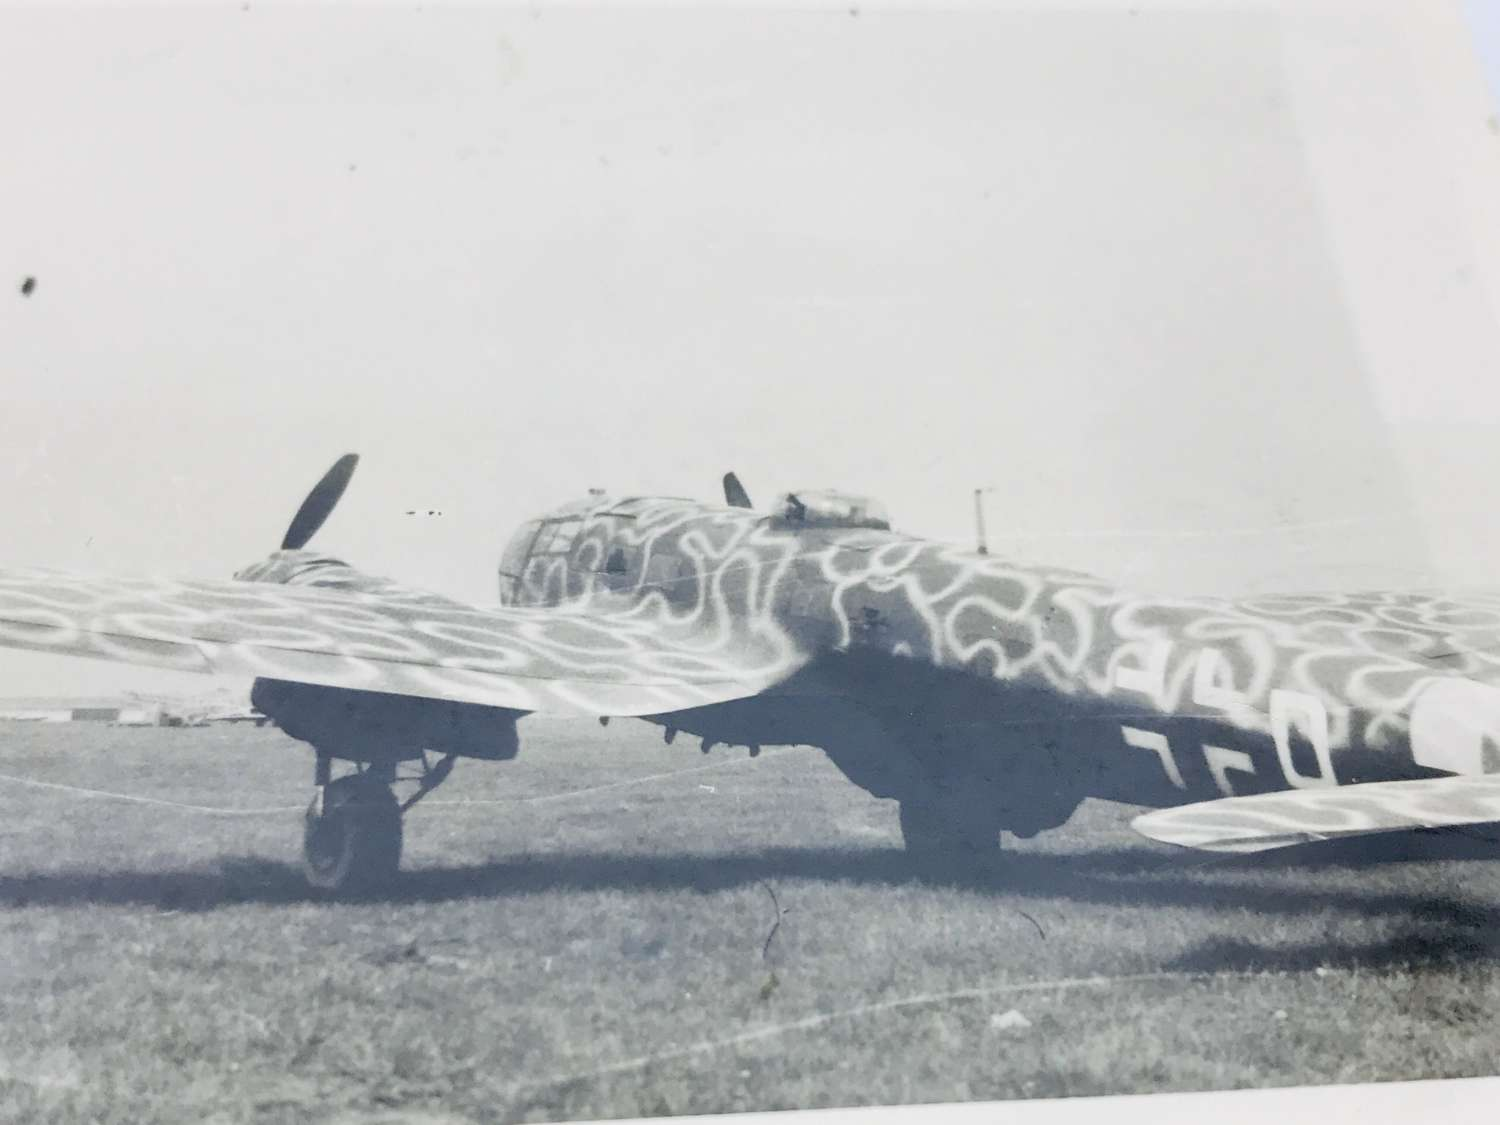 Heinkel HE111 with late war camouflaged